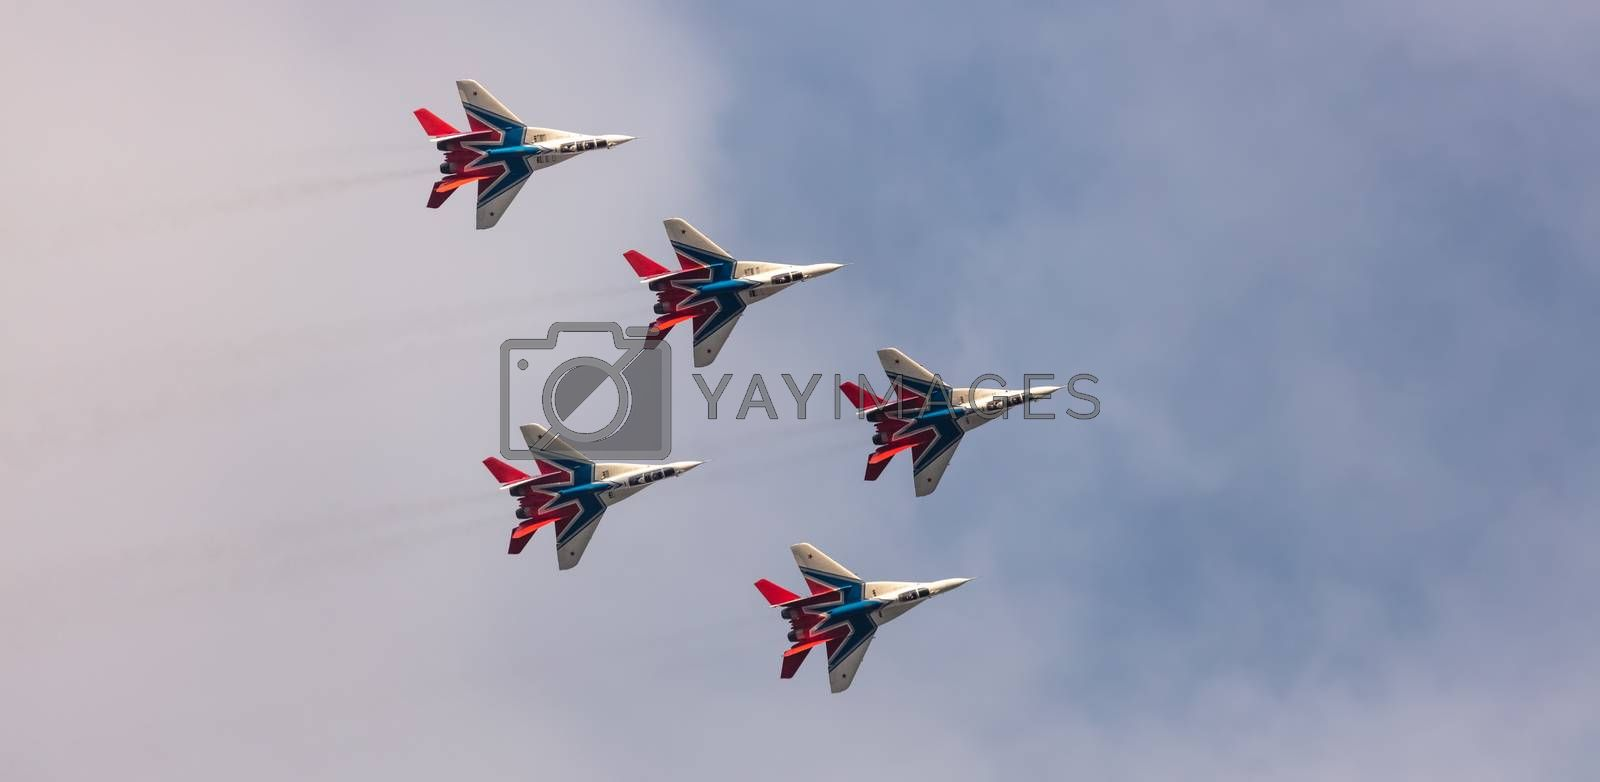 Barnaul, Russia - September 19, 2020: A low angle shot of Strizhi MiG-29 fighter jet squadron performing stunts during an aeroshow. Blue cloudy sky as a background.